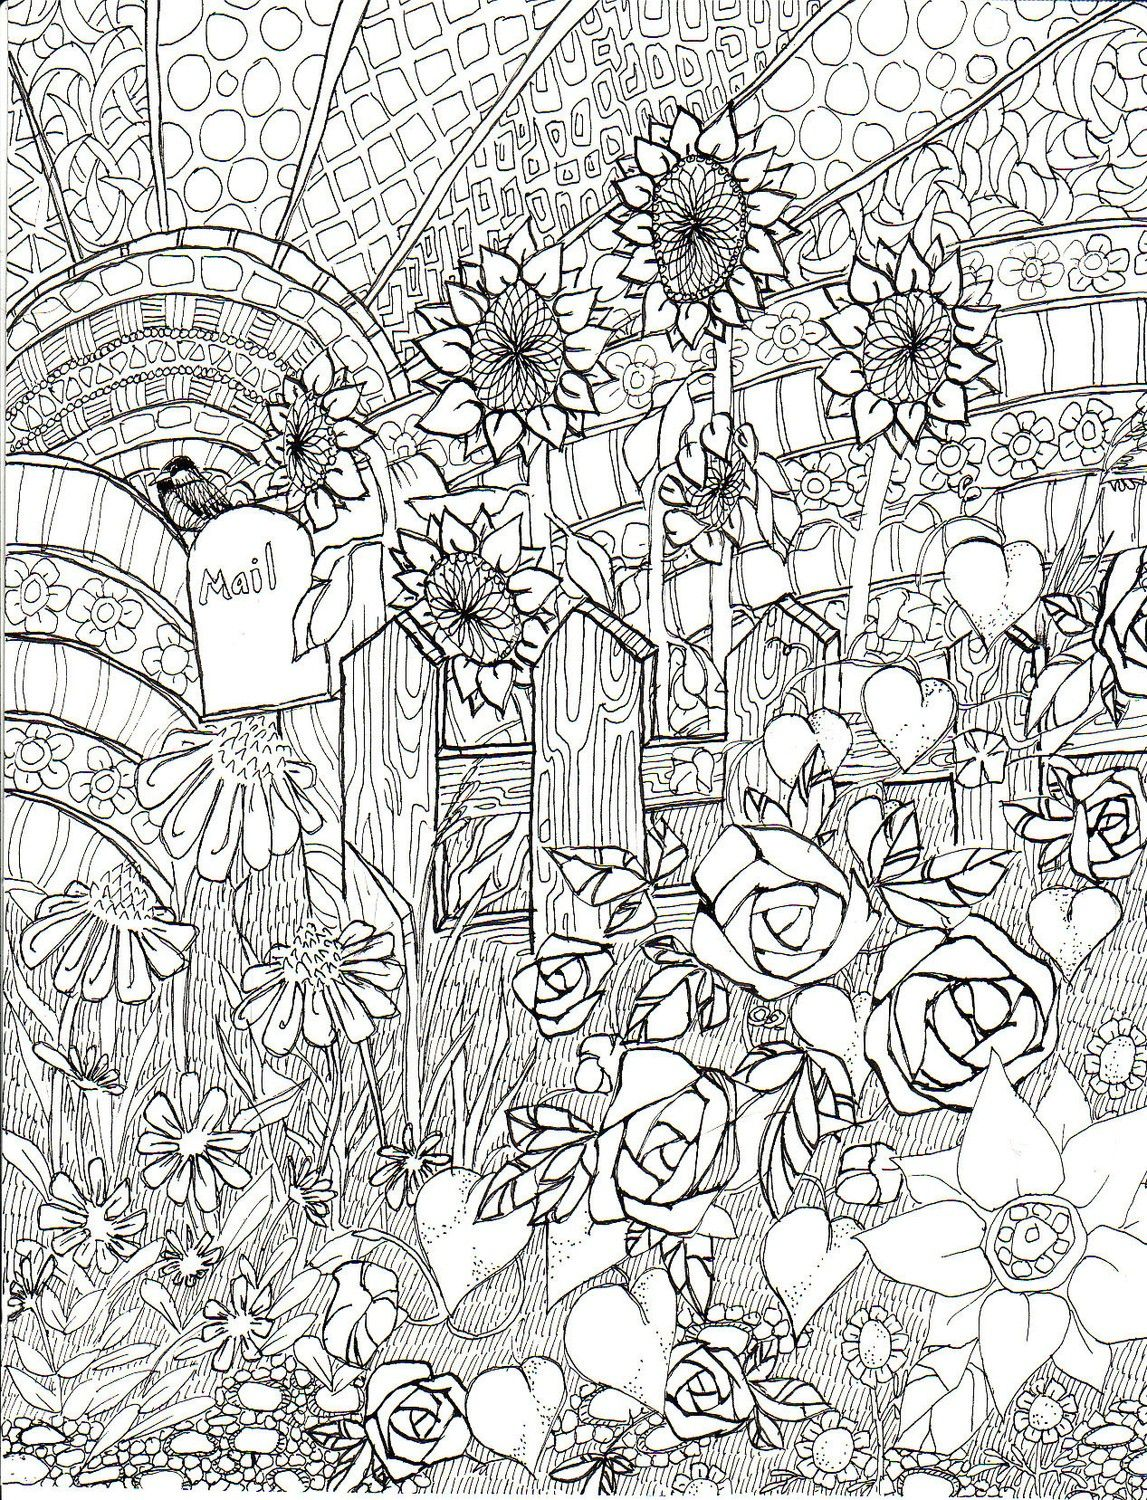 Late Summer Garden, coloring page, ink illustration, Life in Line ...